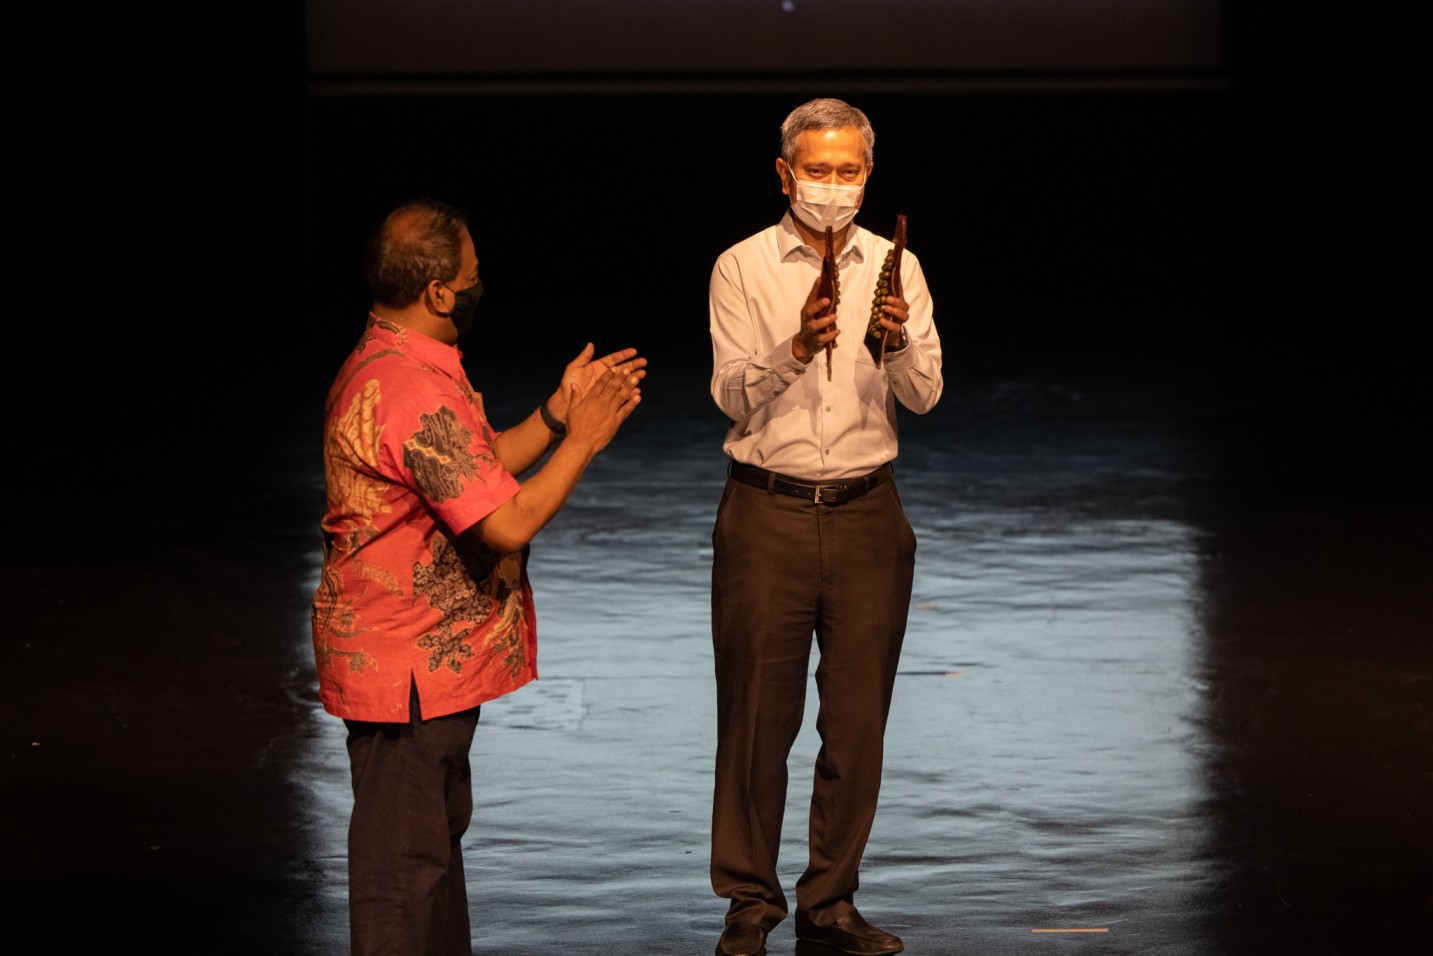 Singapore's Foreign Affairs Minister Dr. Vivian Balakrishnan was the Guest of Honour at the 'Remembering Neila Sathyalingam Festival' by Apsaras Arts